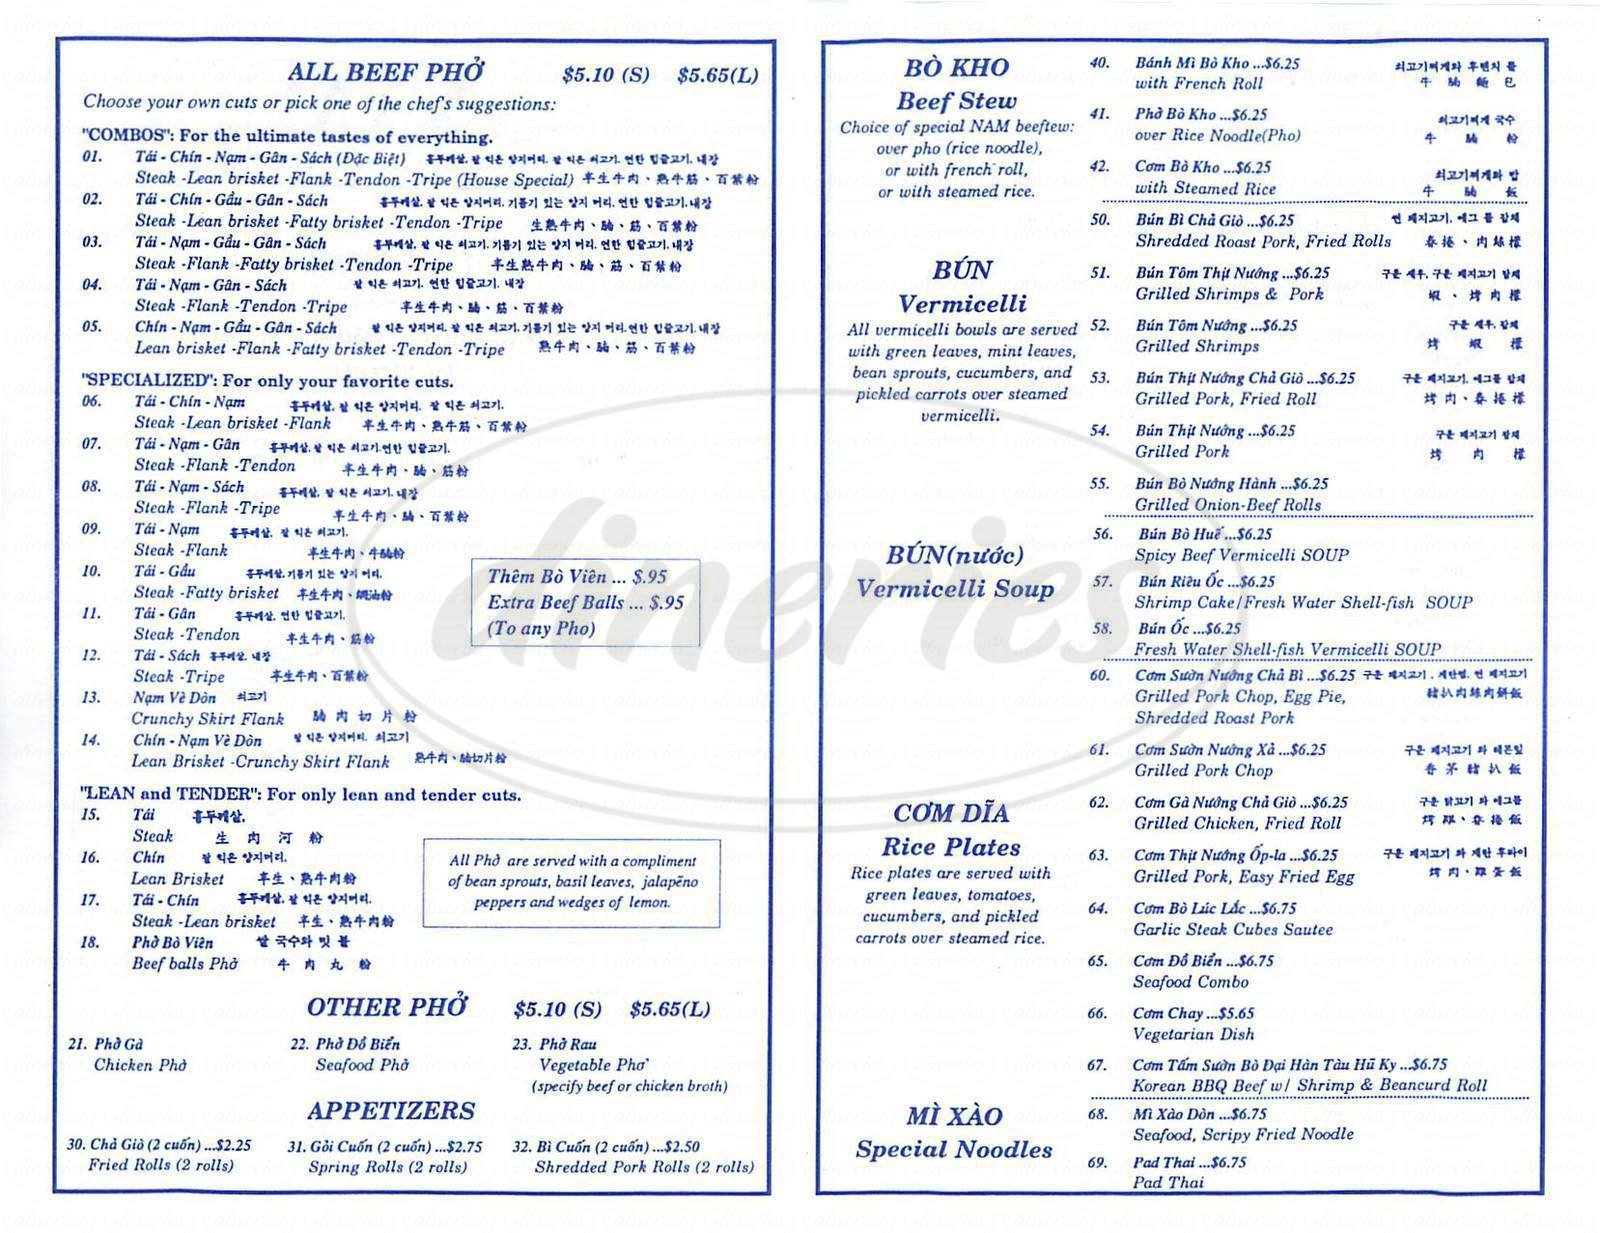 menu for Pho Nam Restaurant